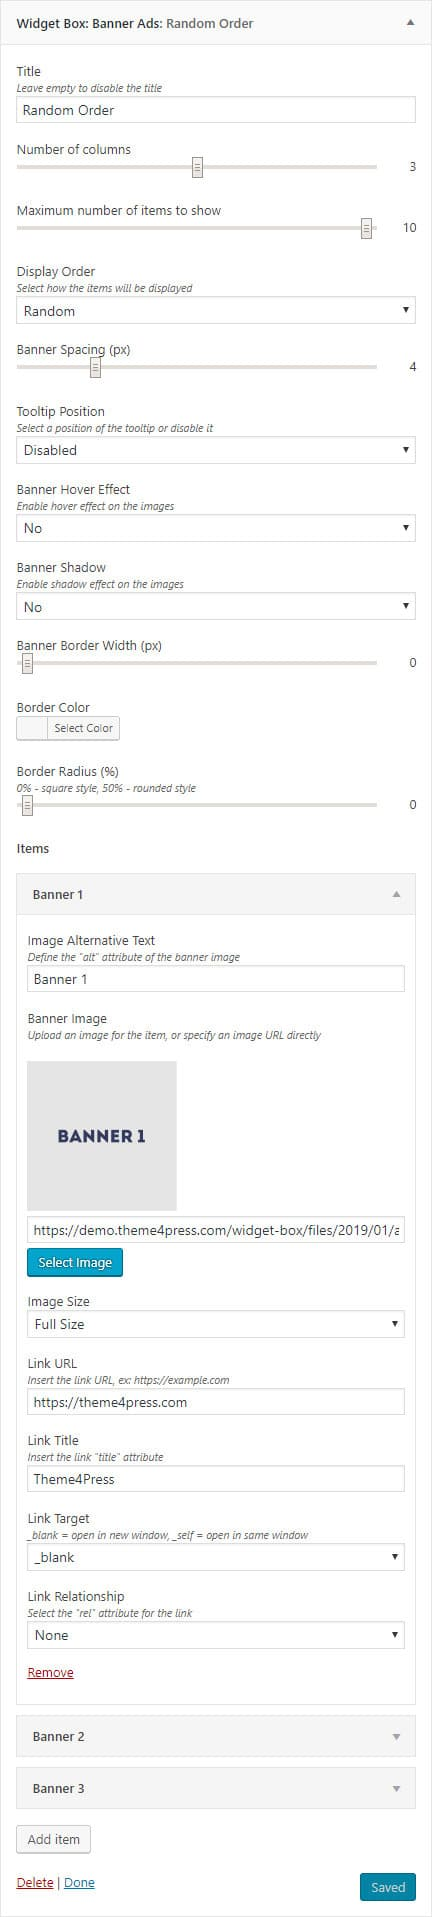 Banner Ads Settings